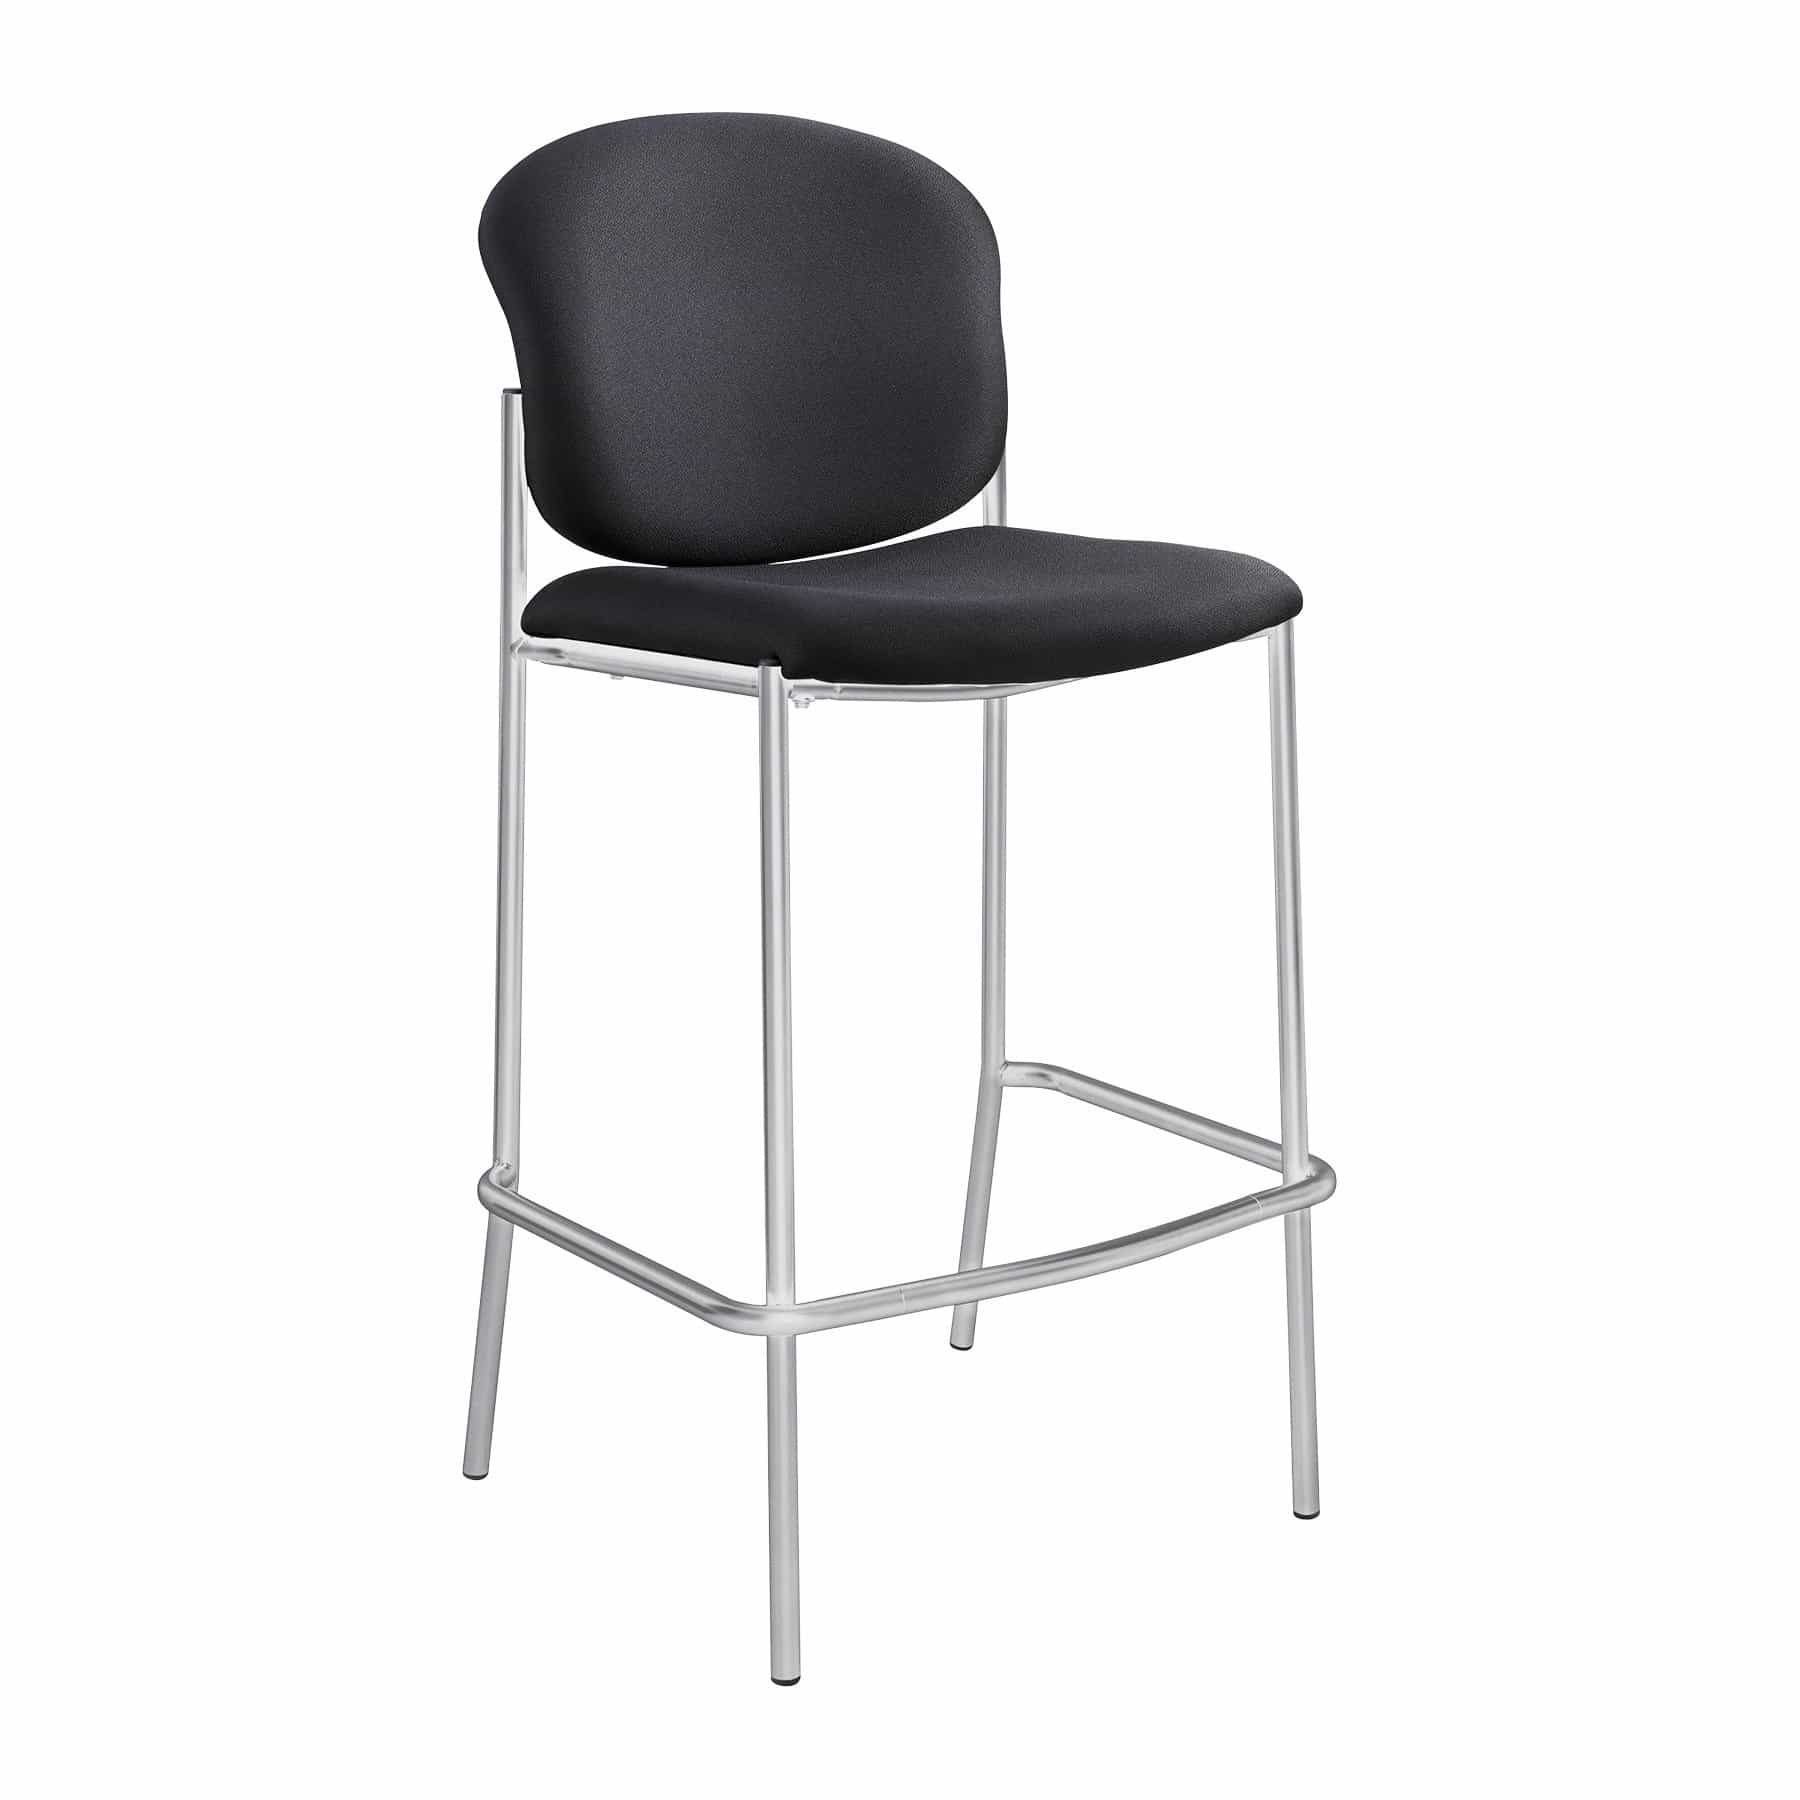 bedinhome - 4195BL Black Diaz seat & back silver powder coat finish frame Bistro-Height Chair - Safco - Extended/Counter Hght Seating